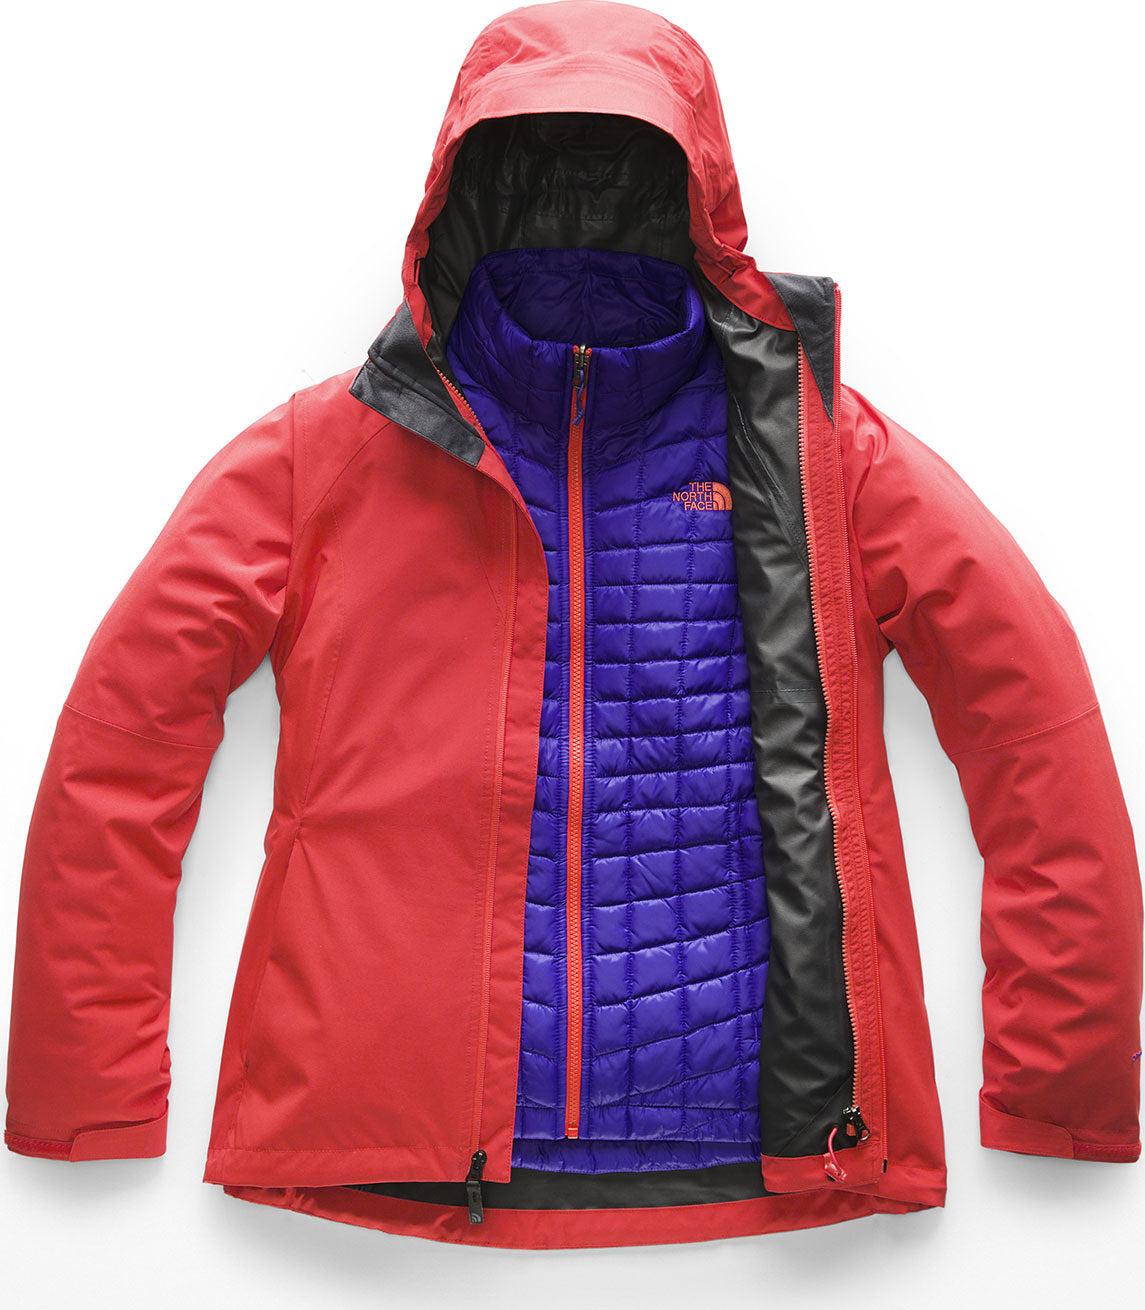 f67f2e6c5668b The North Face Manteau Thermoball Triclimate Femme   Altitude Sports